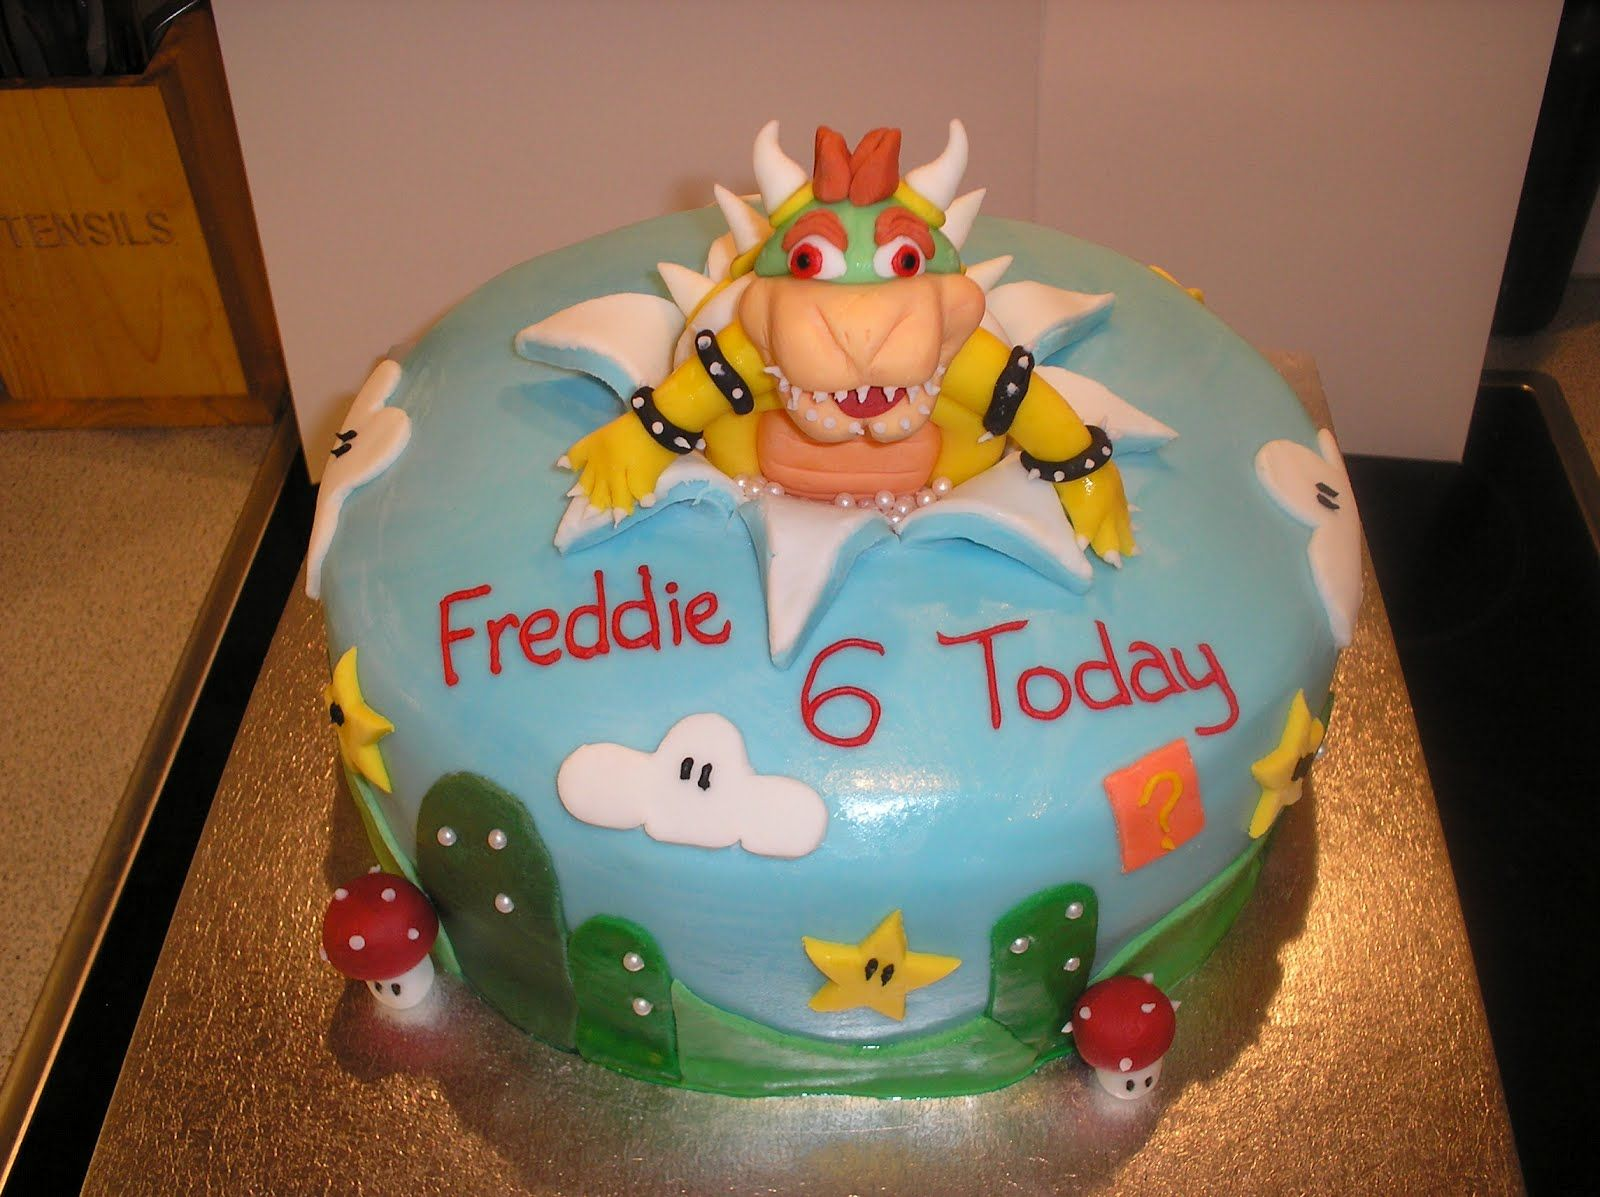 Nickys Cakes Bowser Cake Bowser Birthday Pinterest Bowser - Bowser birthday cake